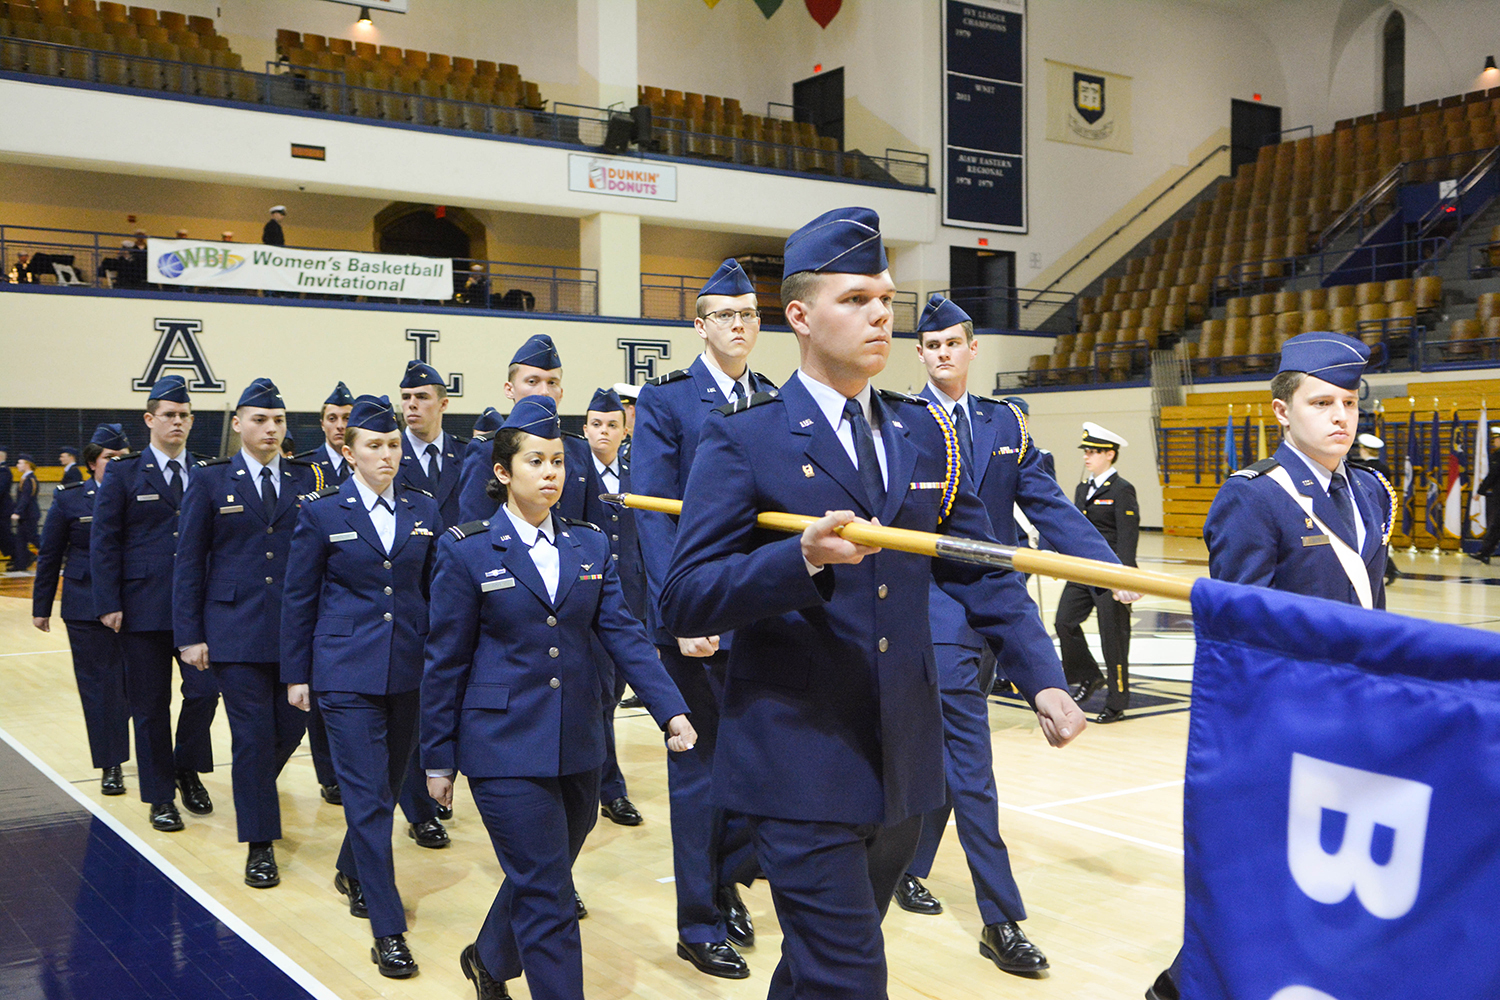 ROTC students march in formation during ceremony.